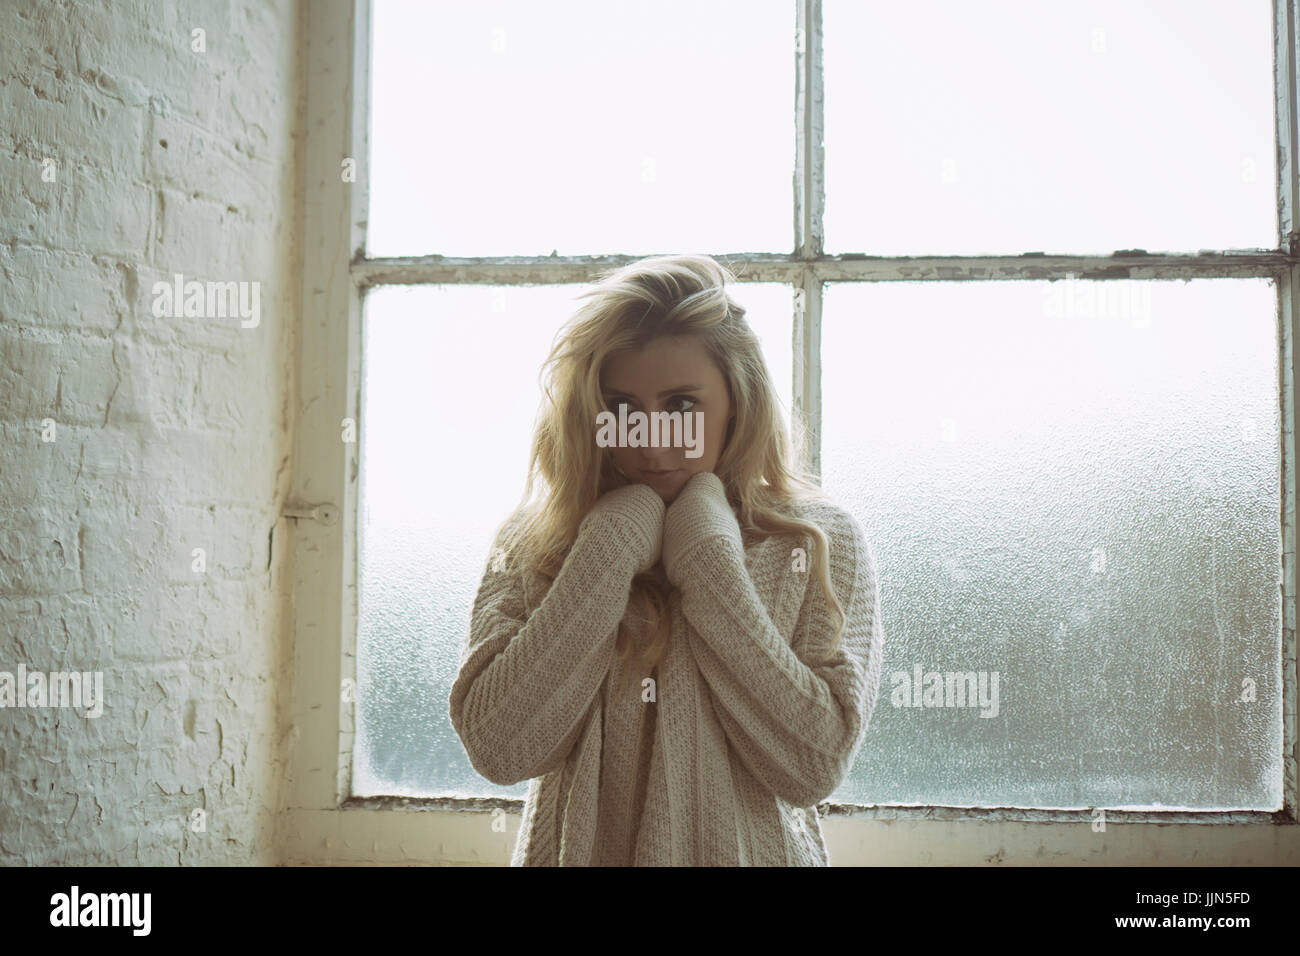 Scared young woman wearing a wool jumper standing by the window looking away - Stock Image